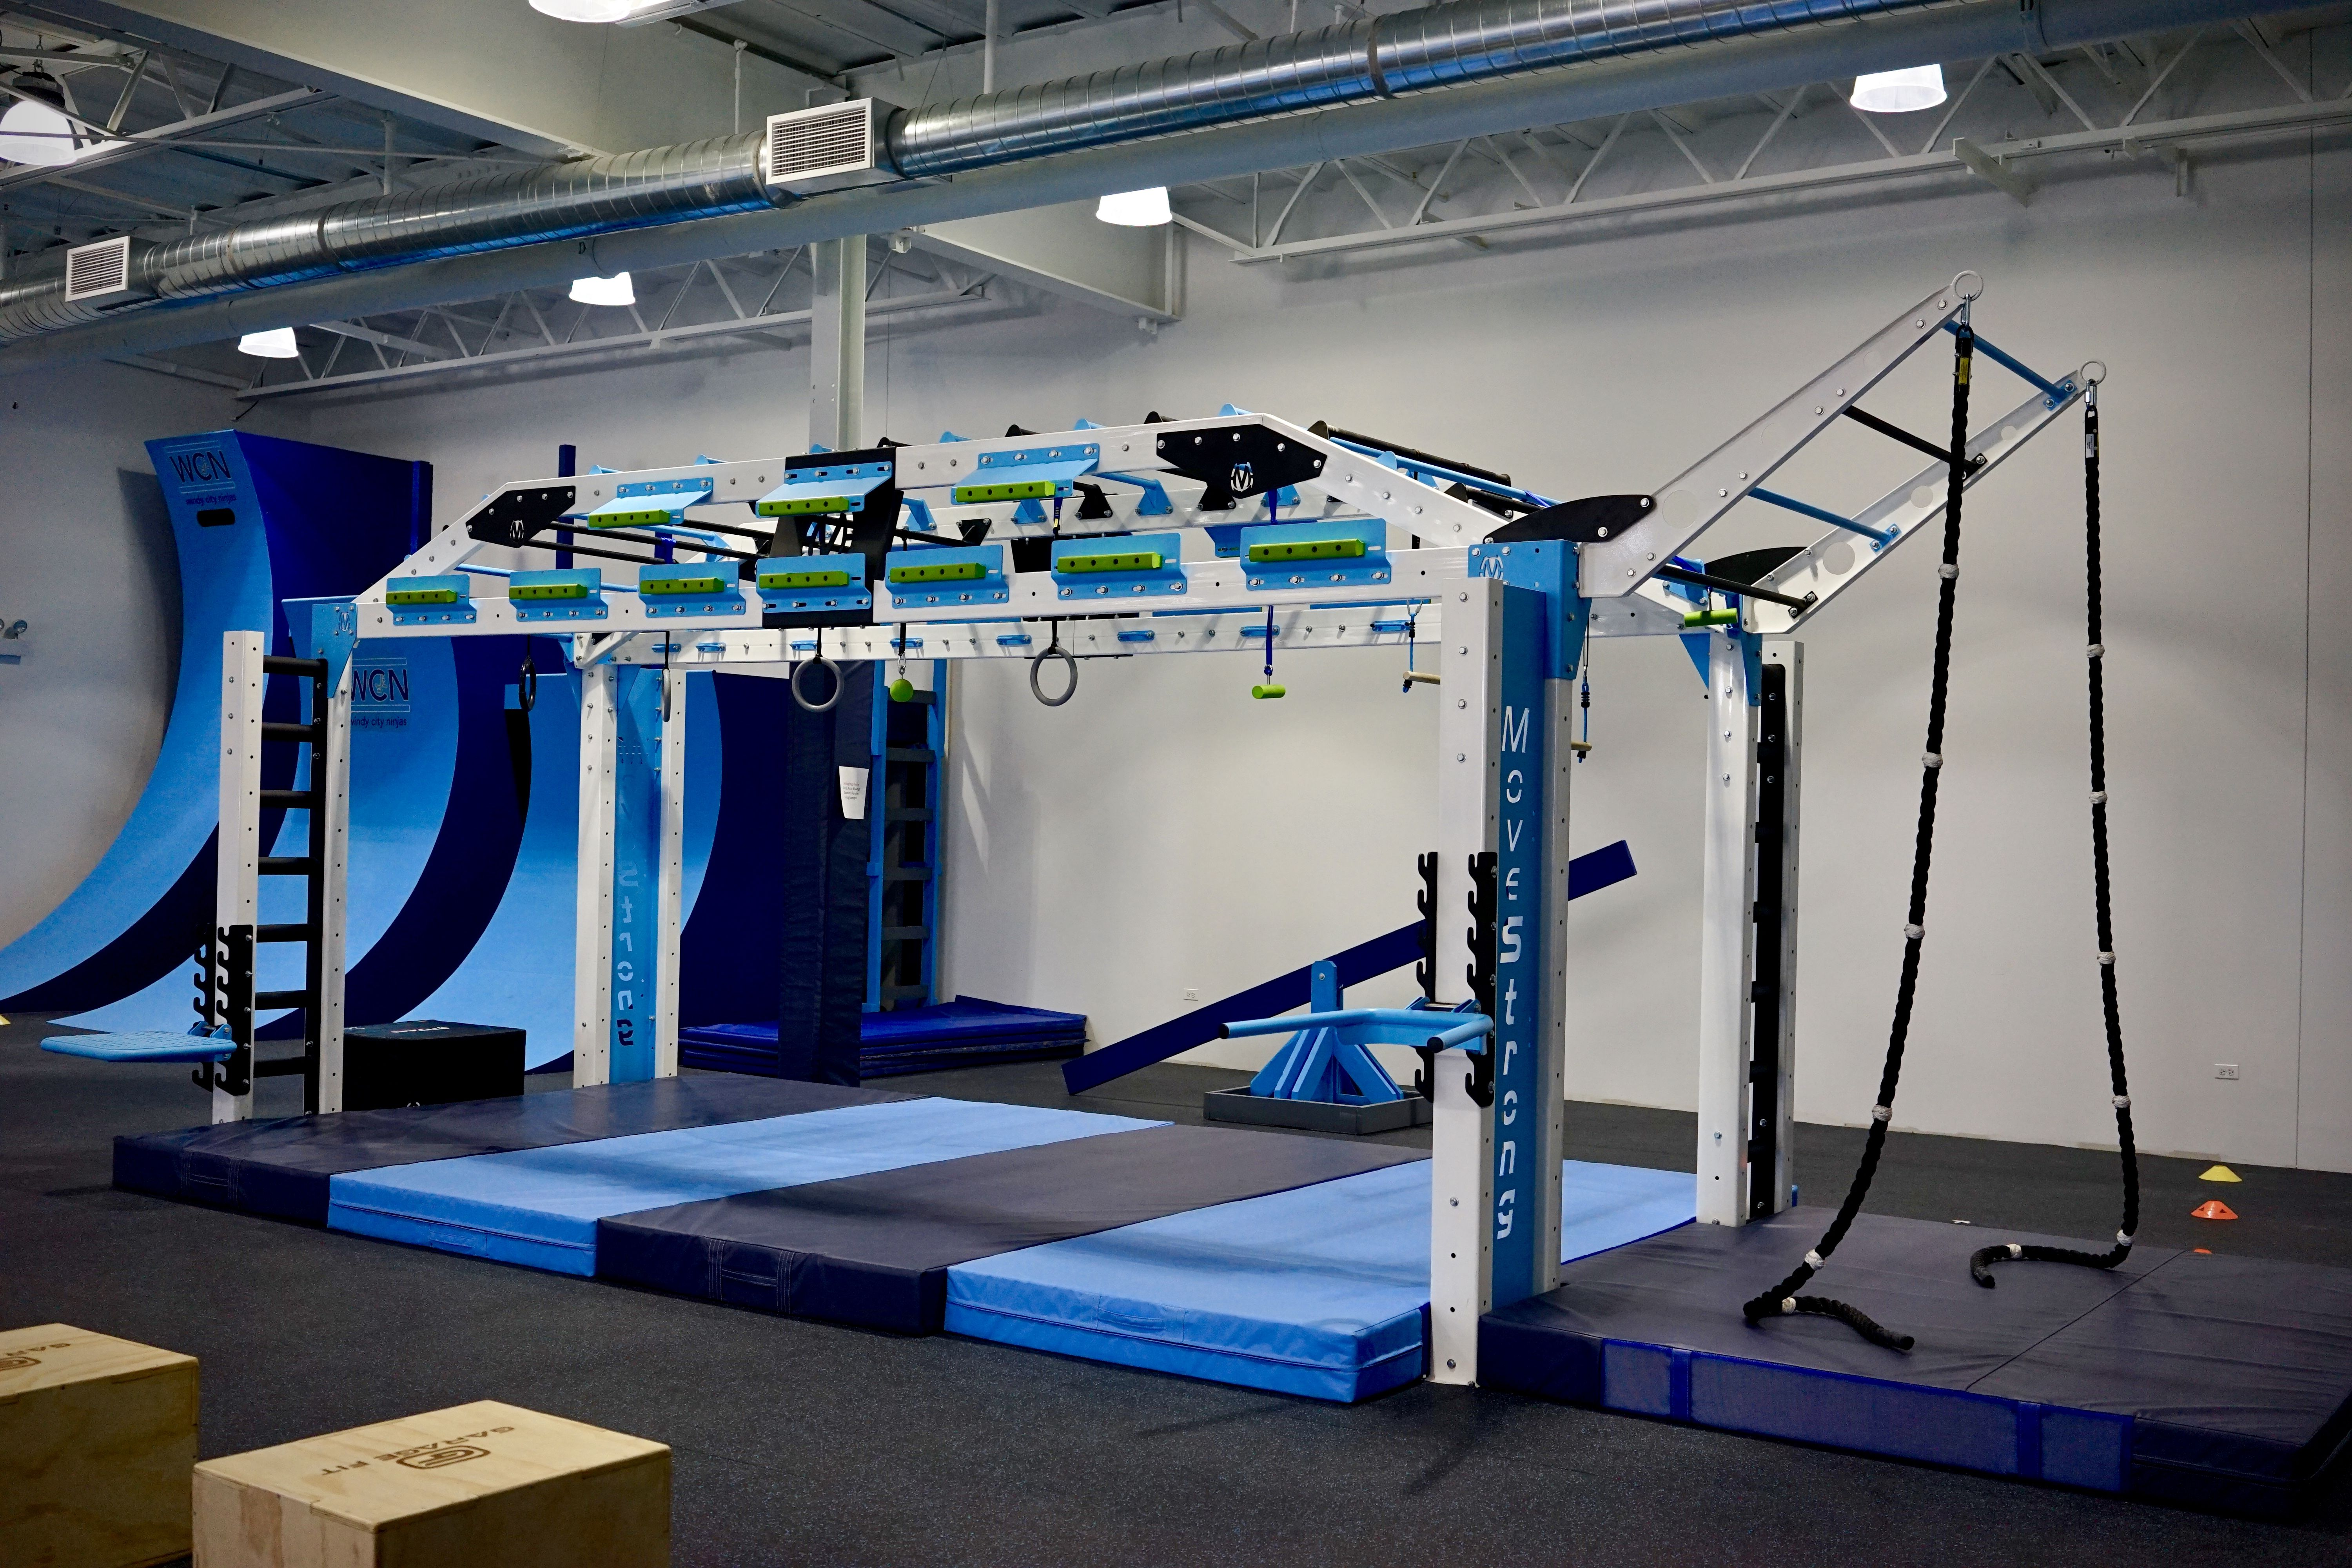 Custom colors and training features for ninja warrior gym